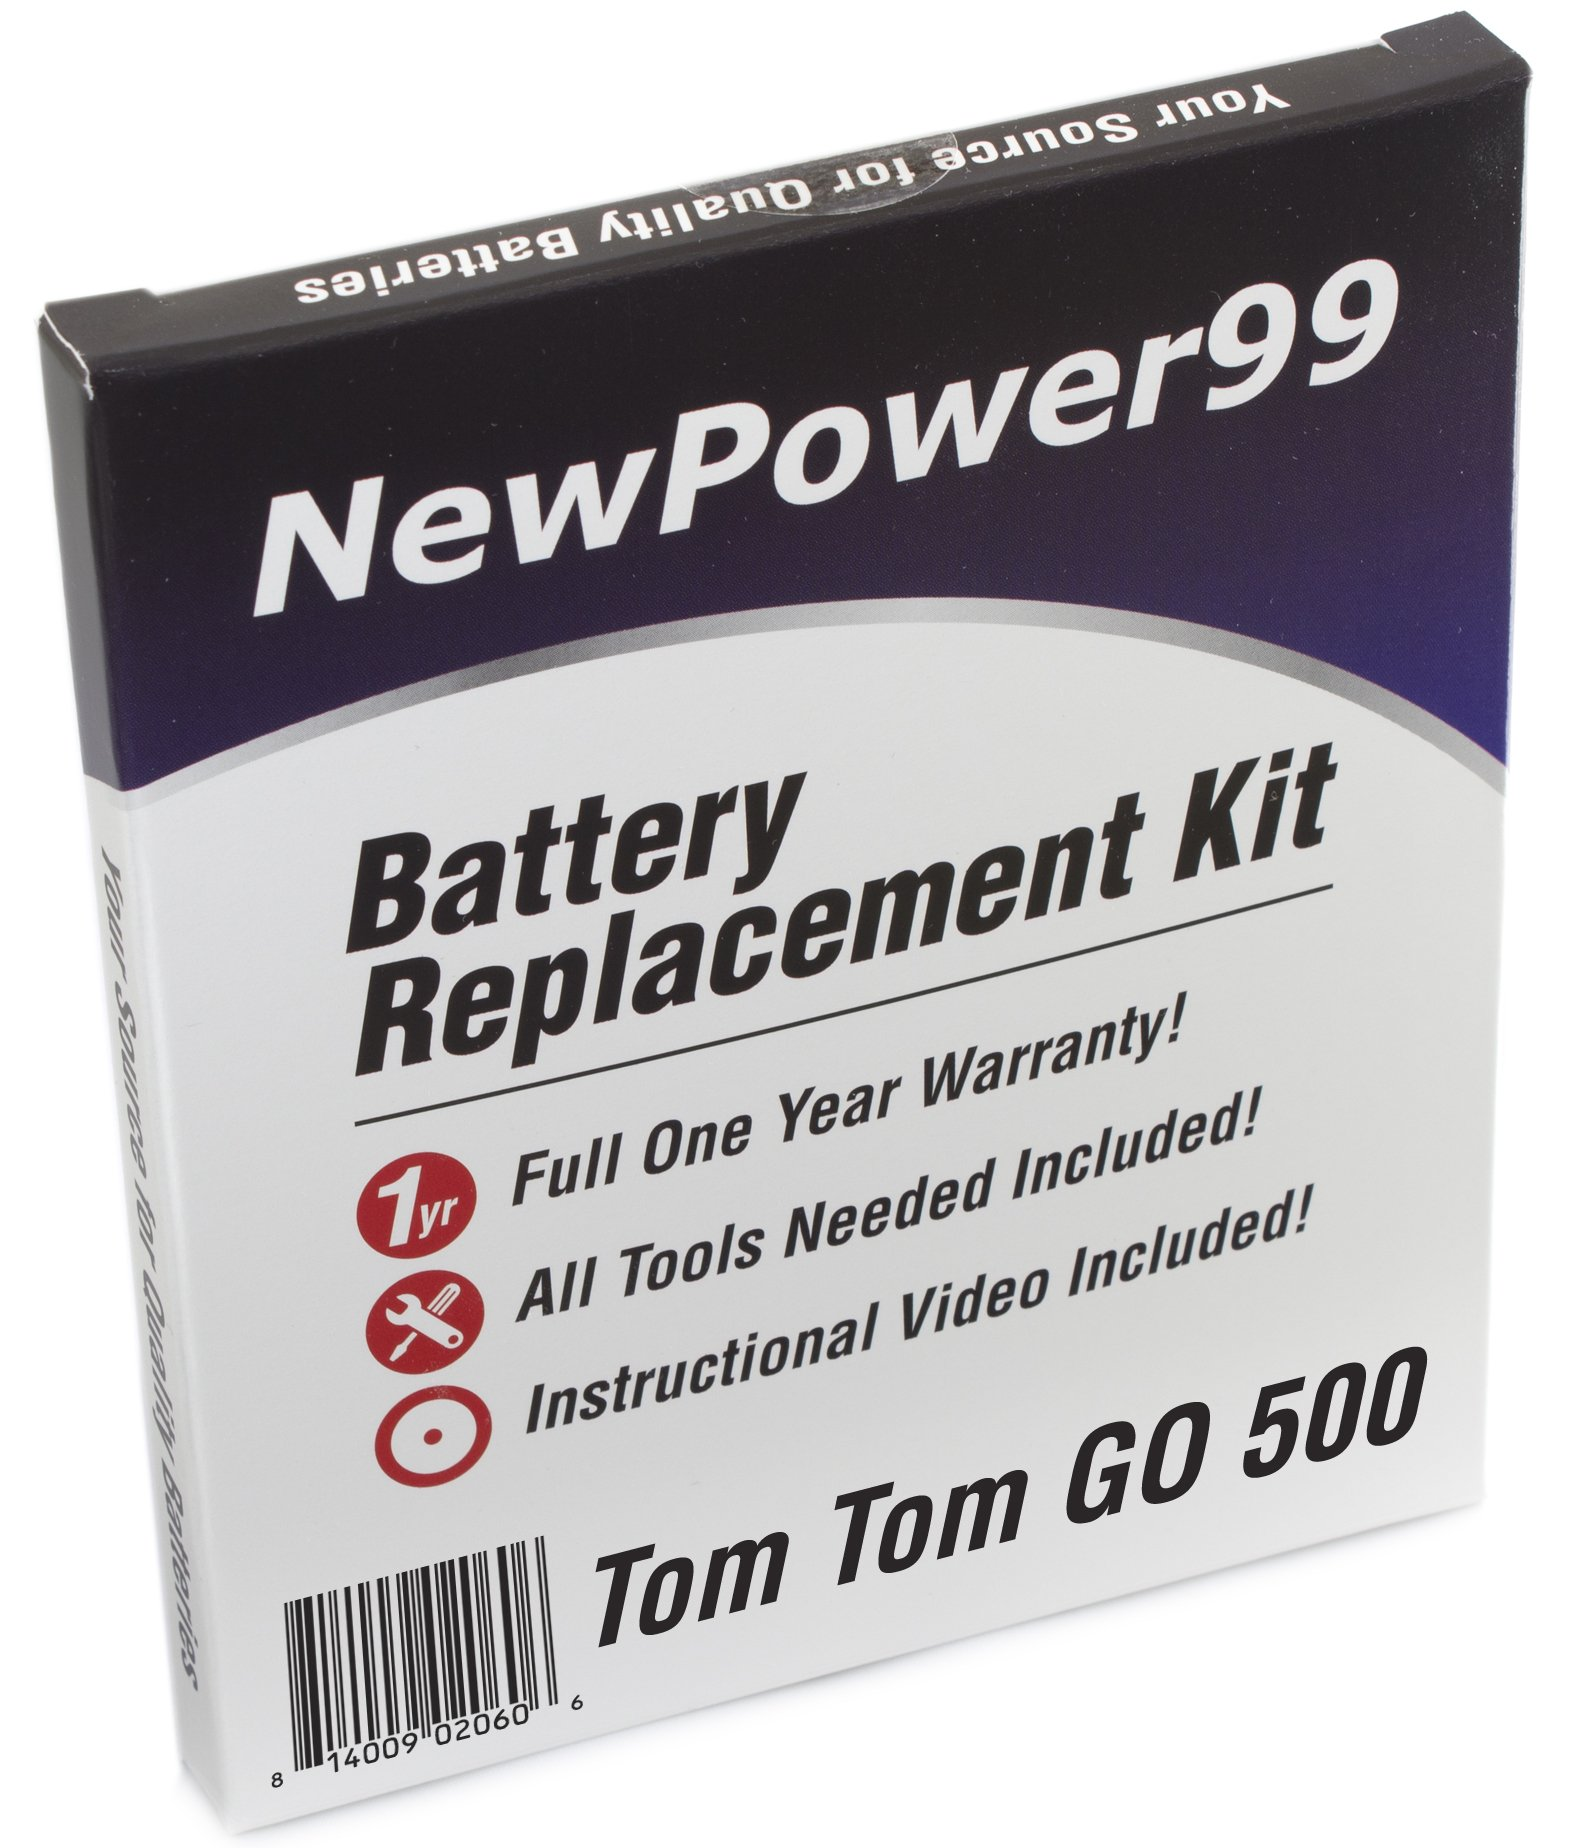 NewPower99 Battery Replacement Kit with Battery, Video Instructions and Tools for Tomtom Go 500 (2013)